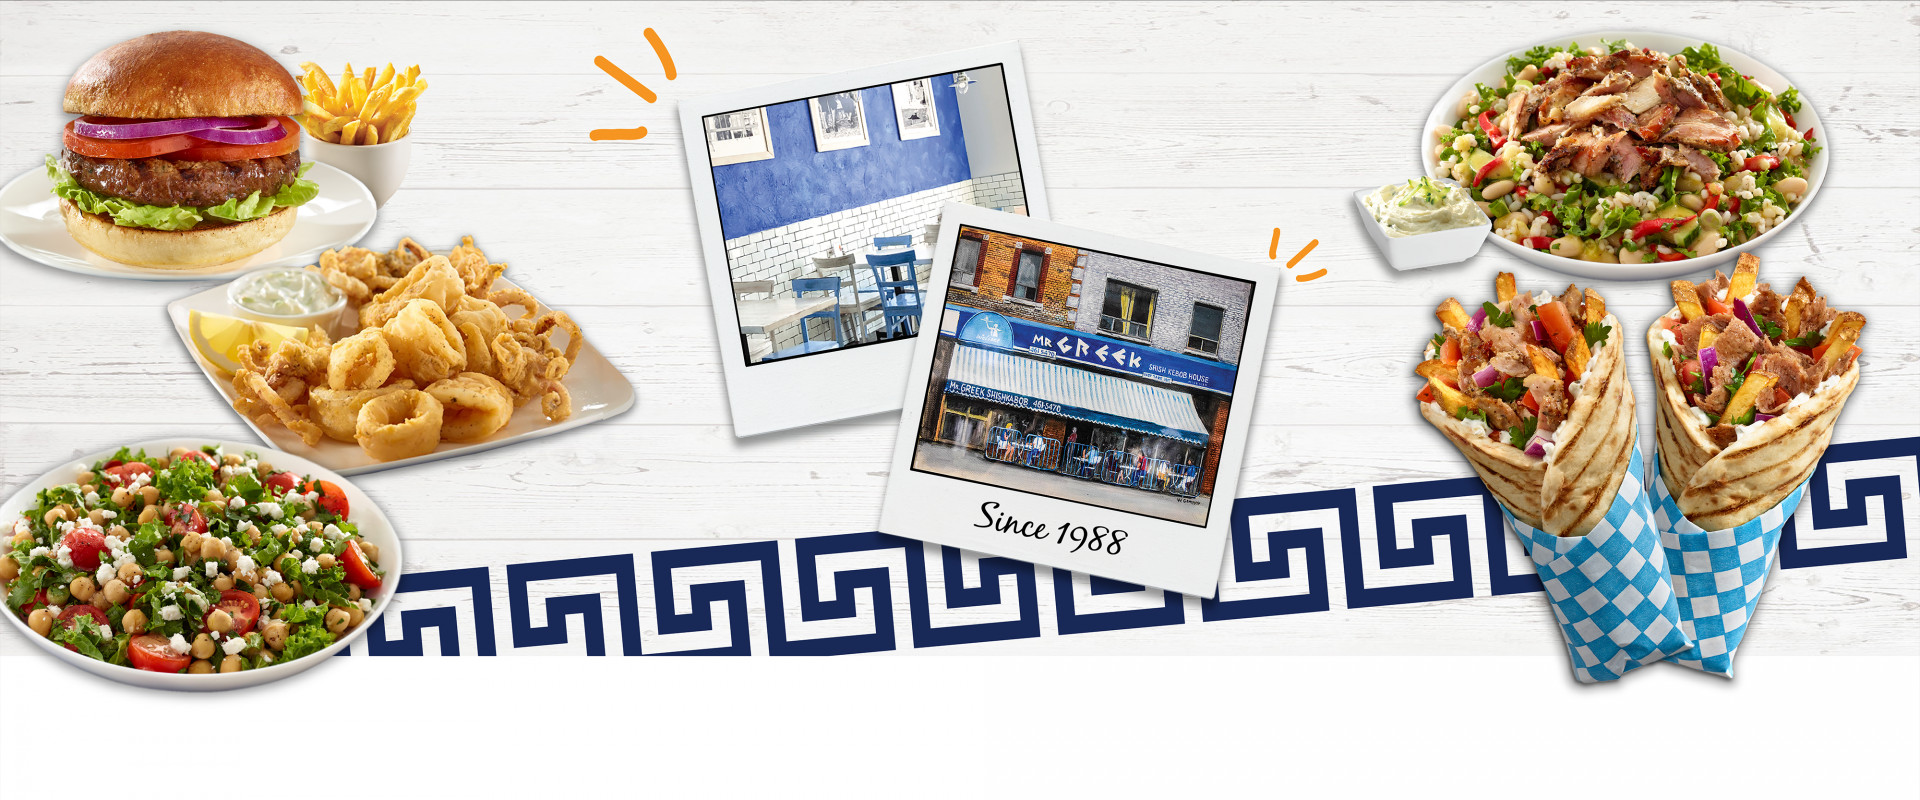 Our Story Our Story New Menu Web Banner 2 En